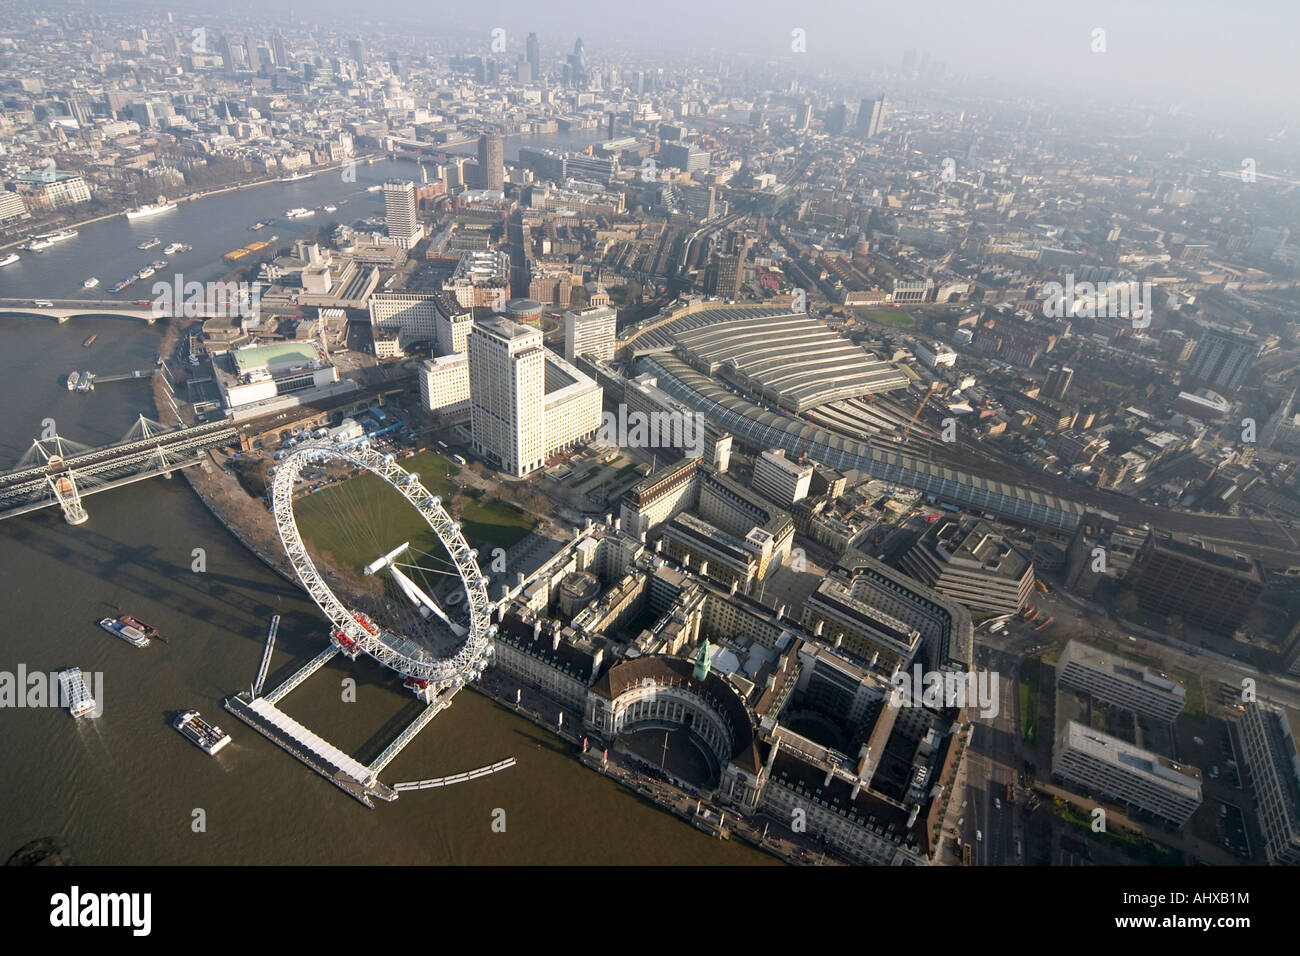 High Level Oblique Aerial View South East Of London Eye Waterloo Station Shell Building SE1 England UK January 2006